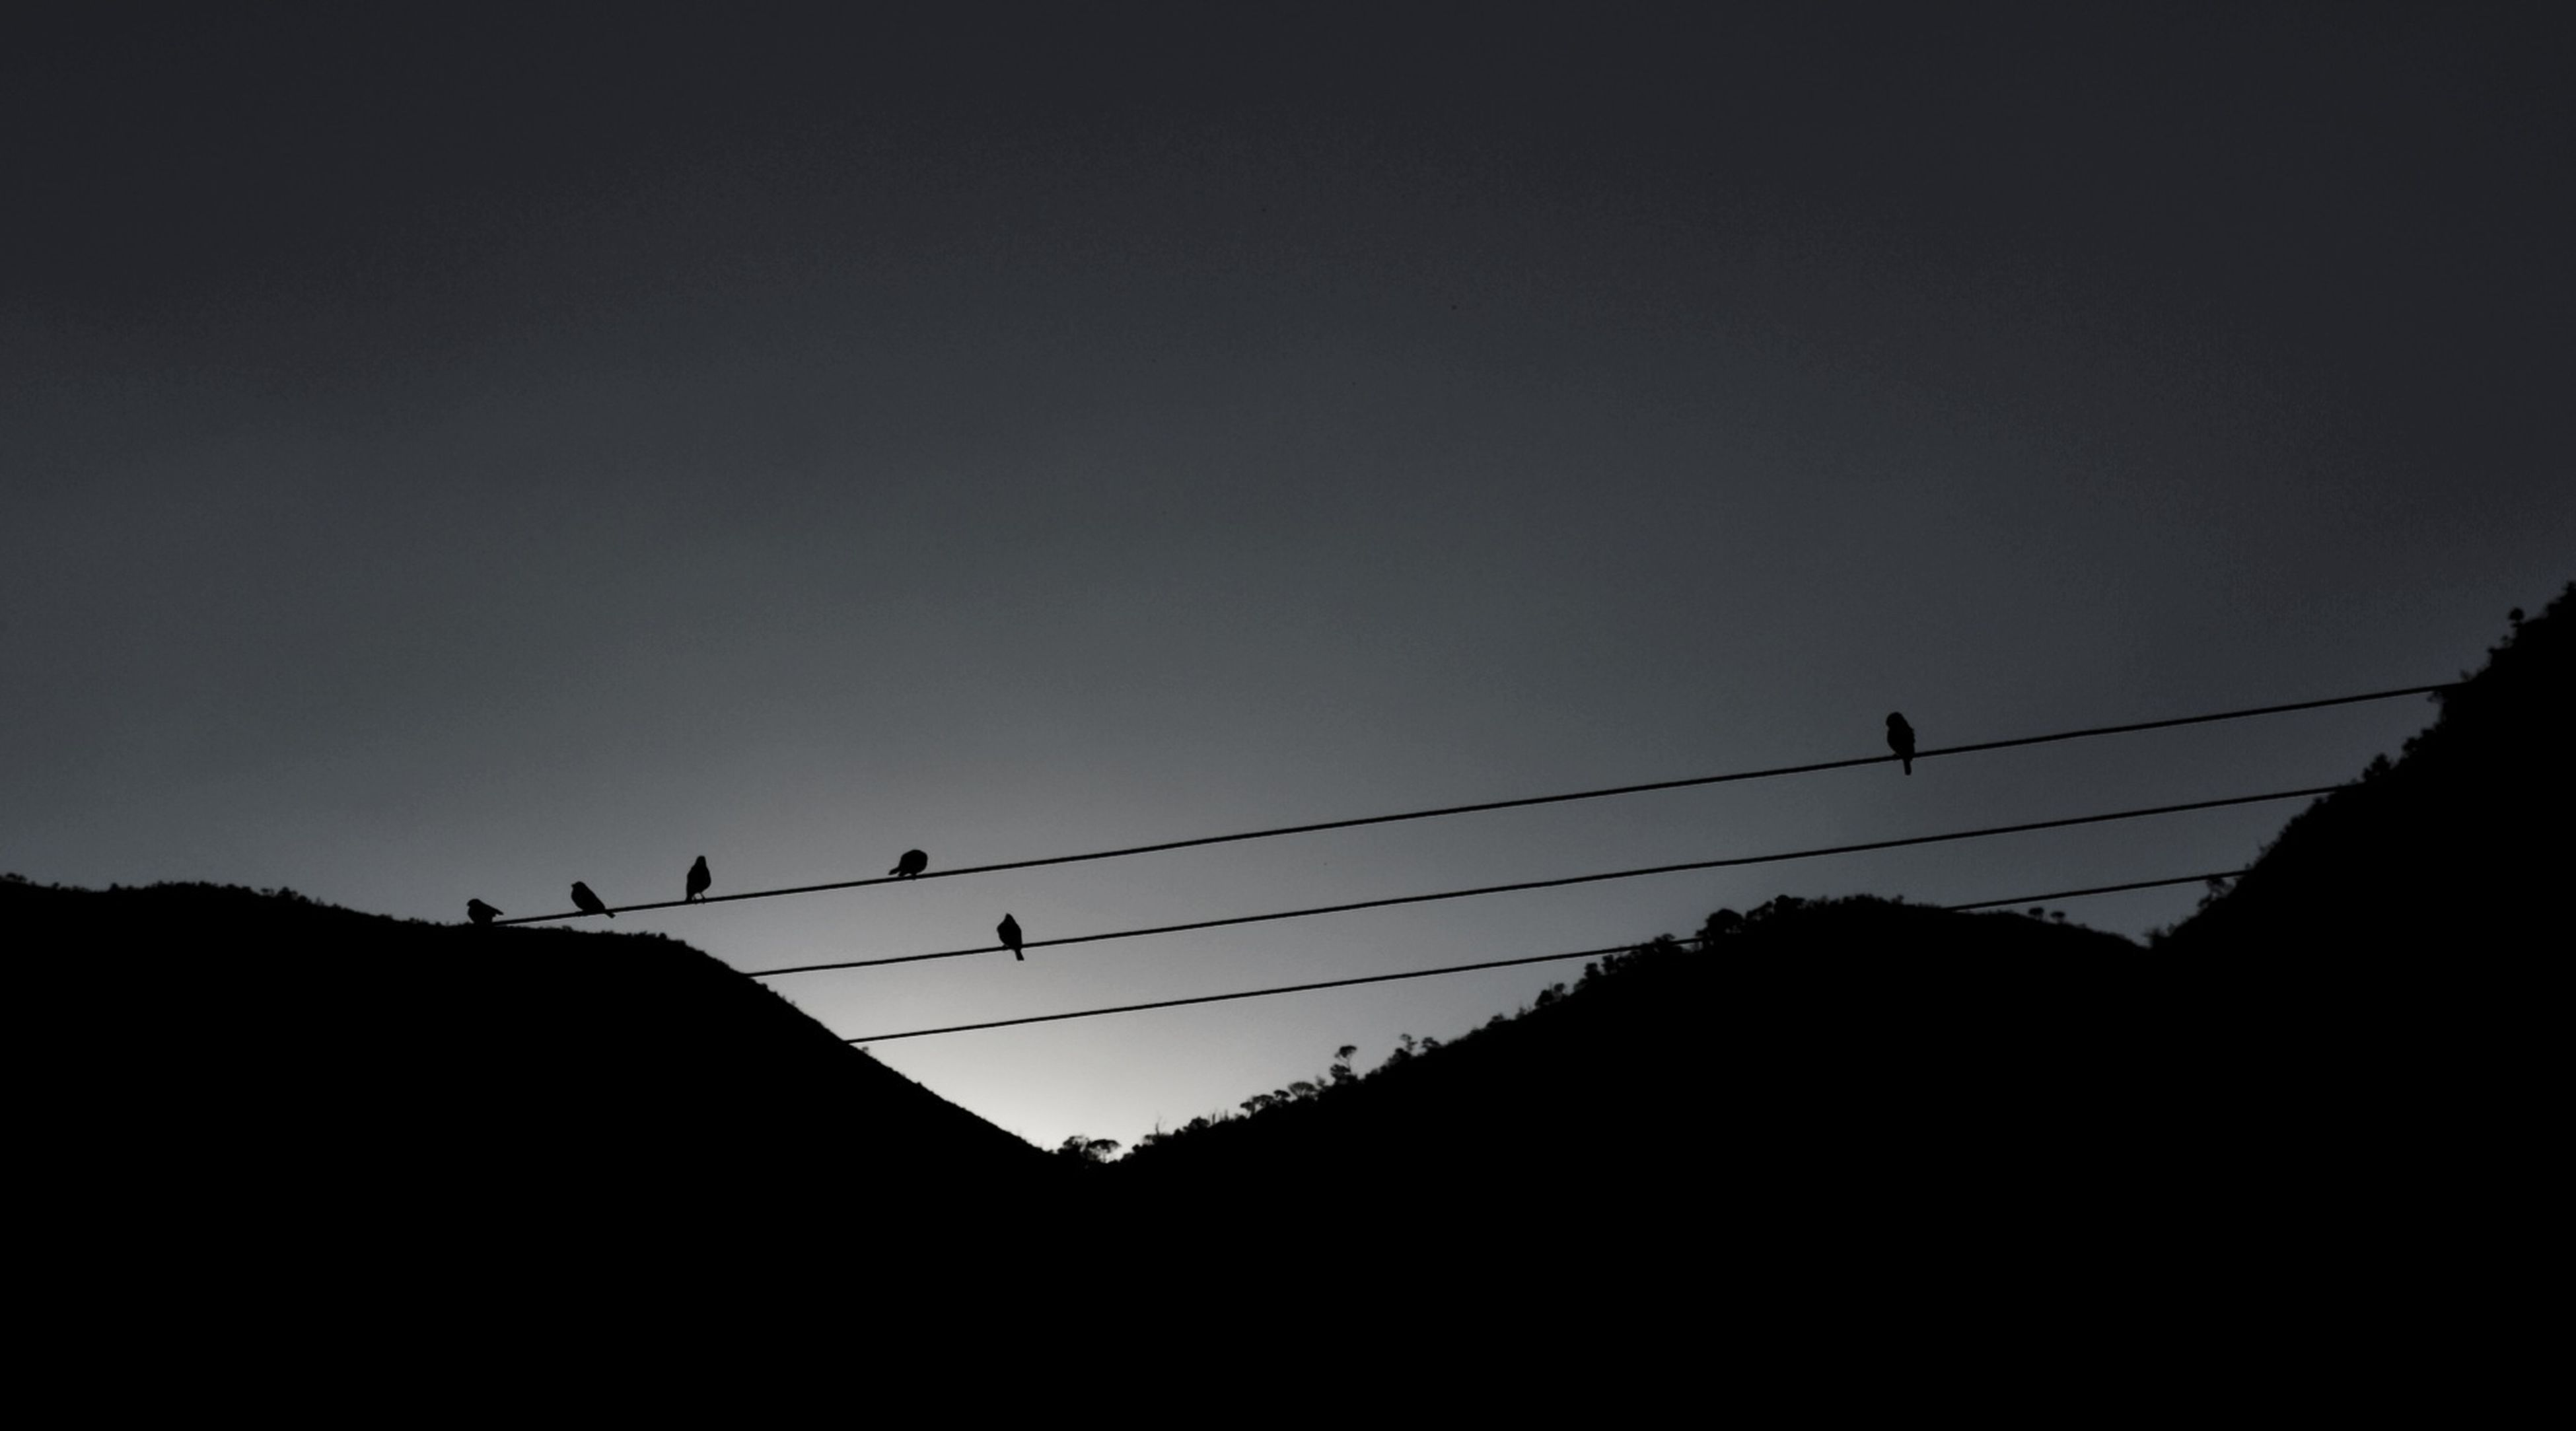 bird, animal themes, silhouette, animals in the wild, low angle view, wildlife, flying, clear sky, power line, copy space, perching, flock of birds, connection, sunset, sky, cable, dusk, nature, electricity pylon